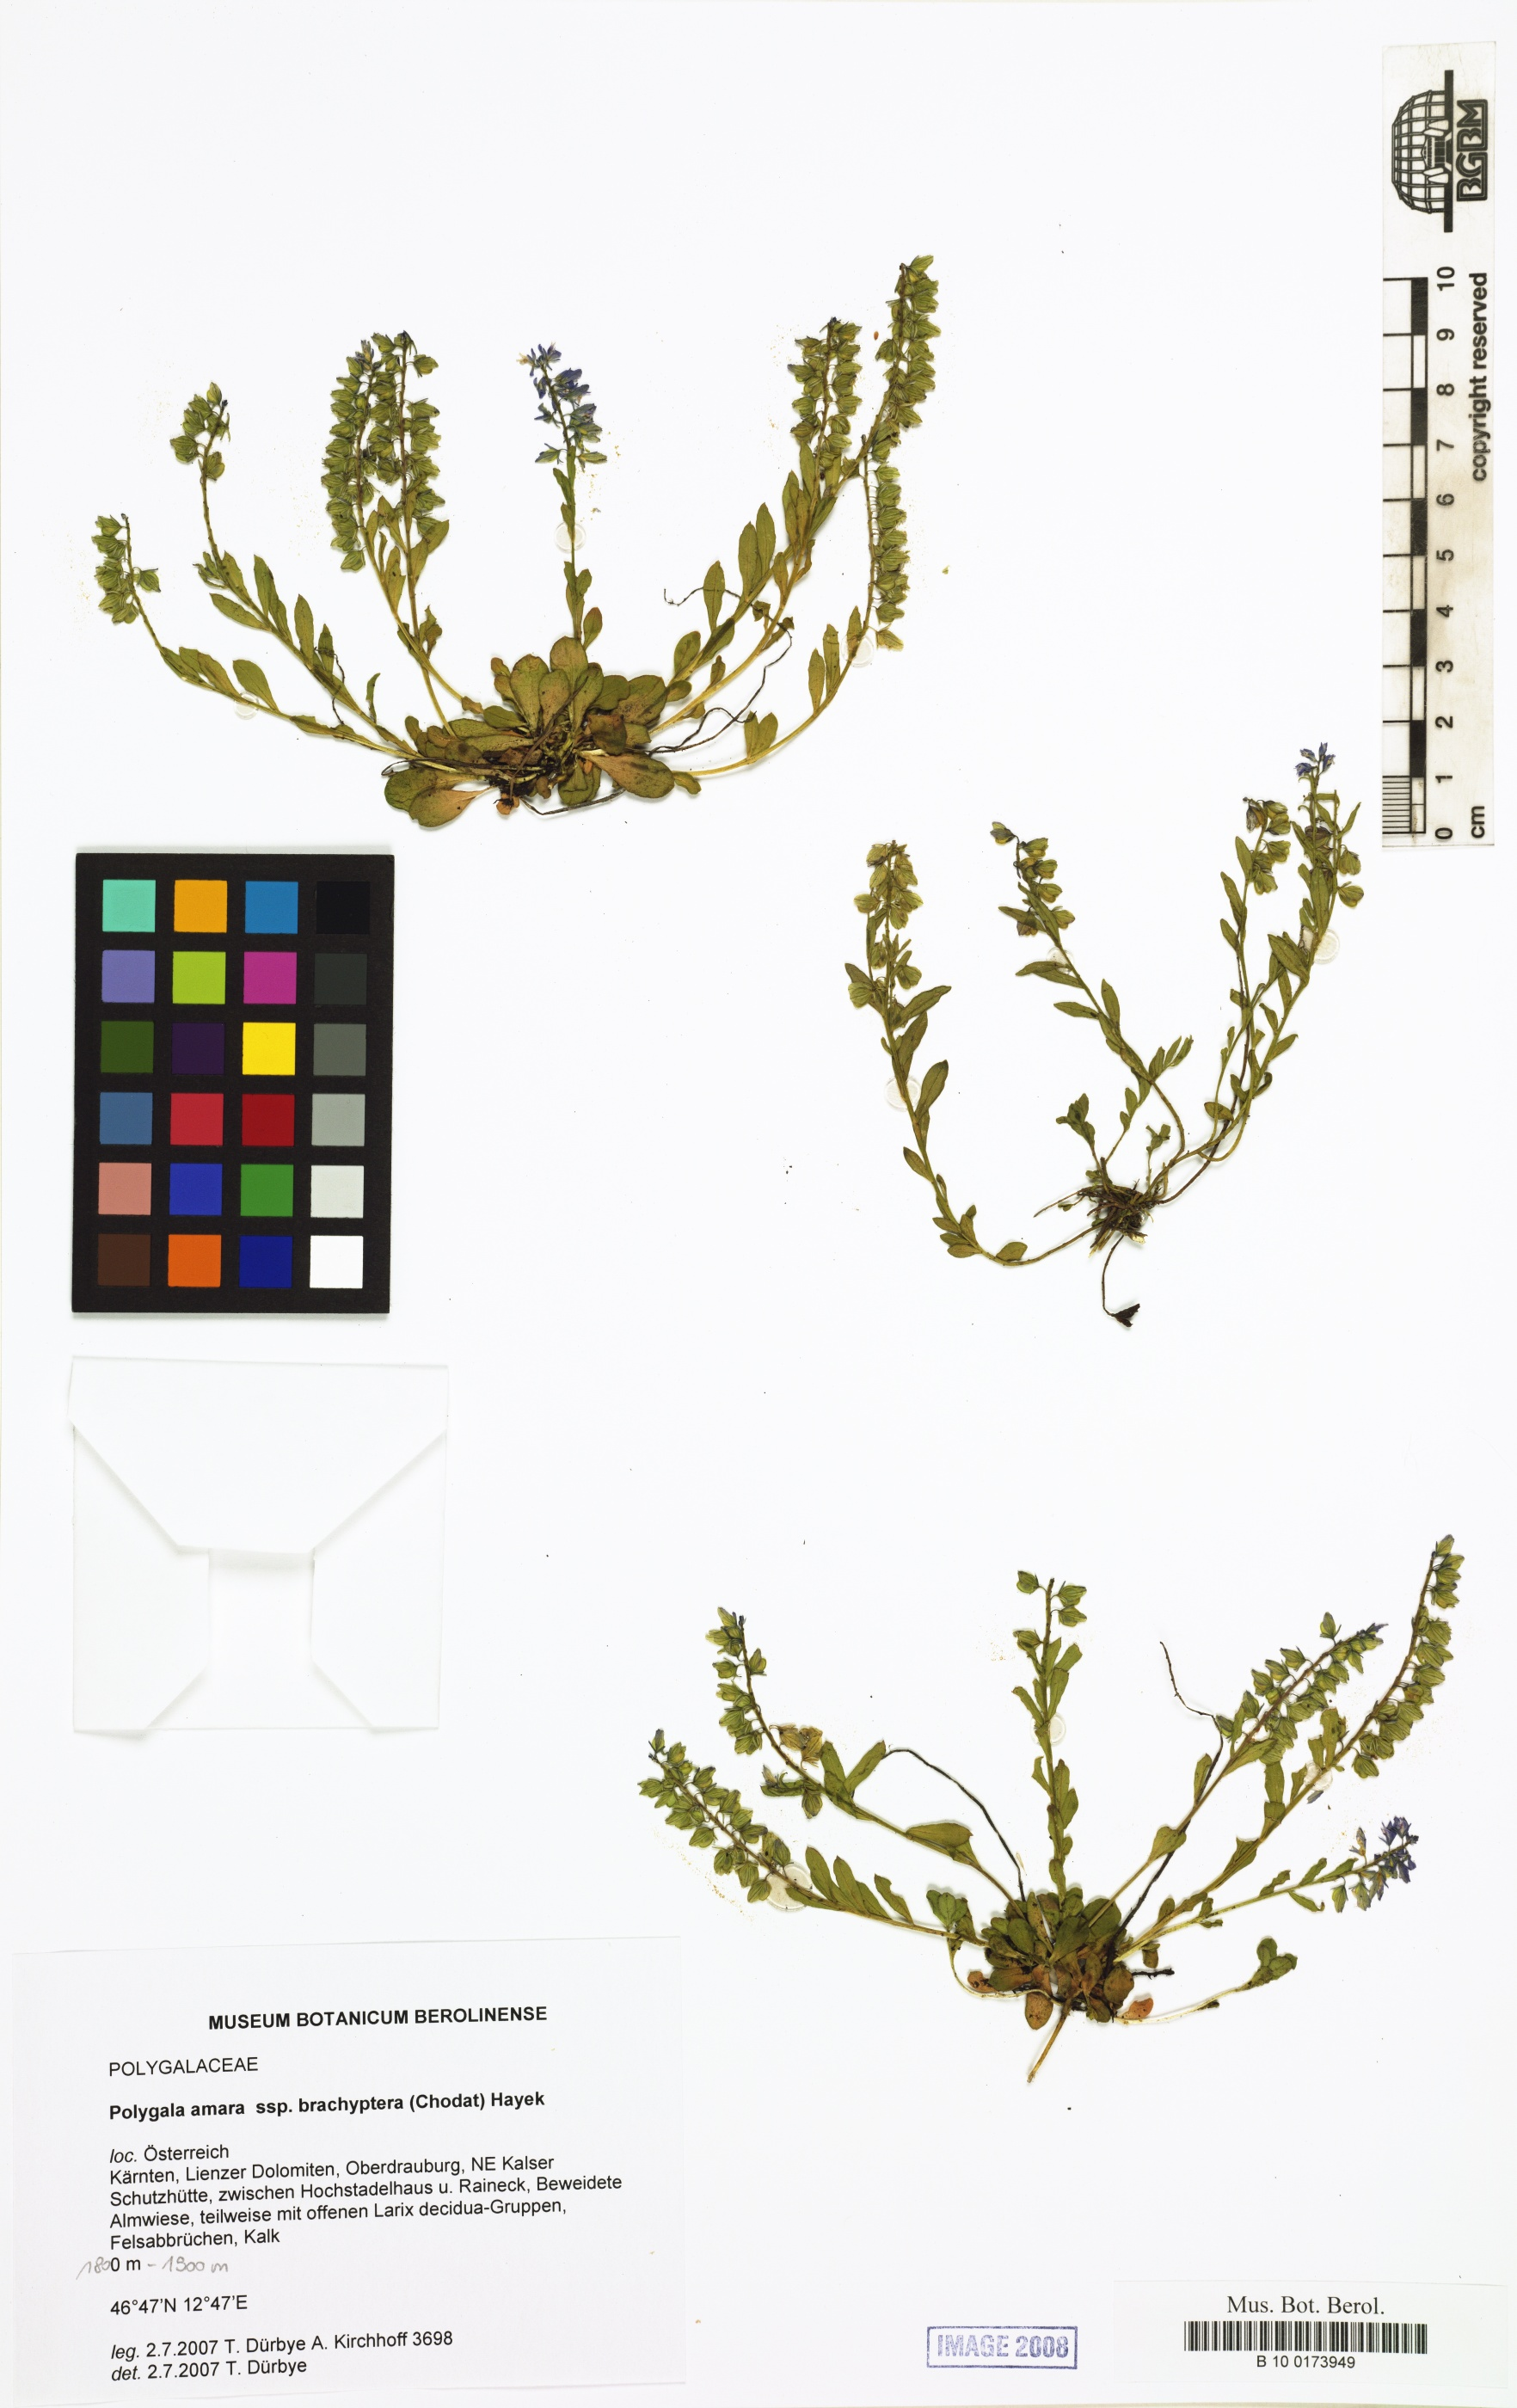 © Botanic Garden and Botanical Museum Berlin-Dahlem, Freie Universität Berlin<br>by Röpert, D. (Ed.) 2000- (continuously updated): Digital specimen images at the Herbarium Berolinense. - Published on the Internet http://ww2.bgbm.org/herbarium/ (Barcode: B 10 0173949 / ImageId: 291603) [accessed 29-Nov-11].<br>